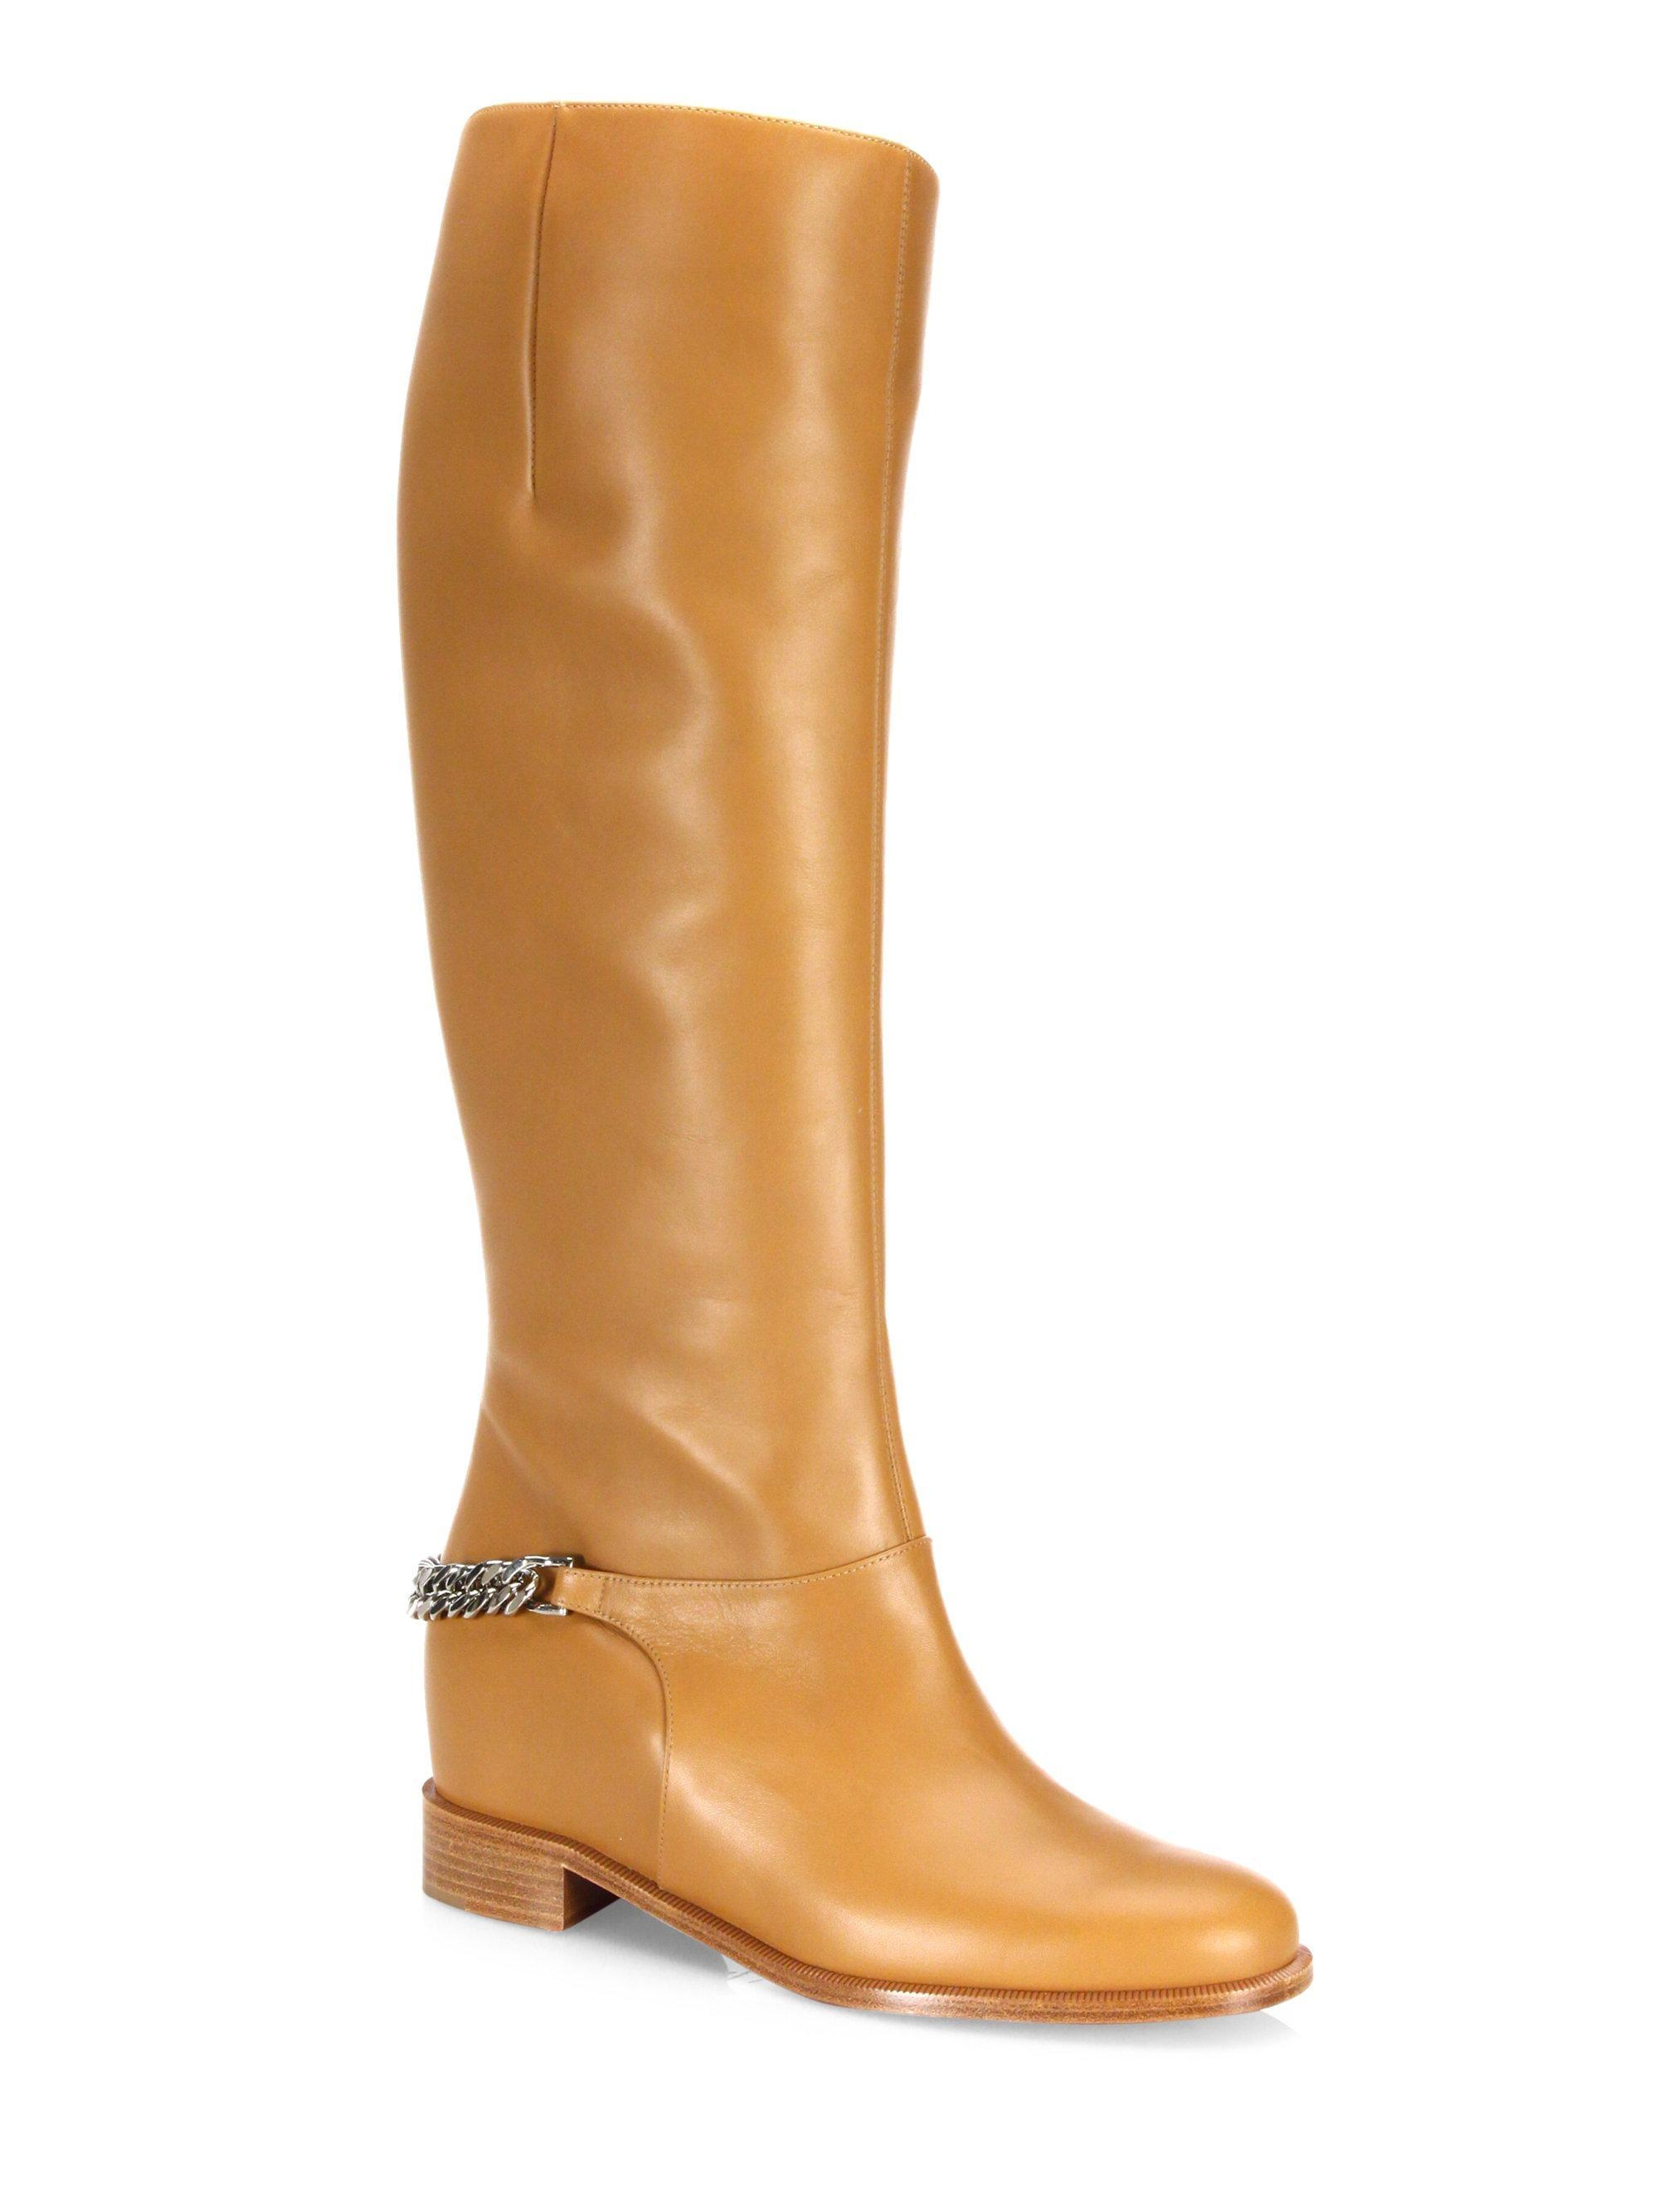 Christian Louboutin Tan Cate Laiton Leather Silver Chain Knee High Boots/Booties Size EU 37 (Approx. US 7) Regular (M, B)